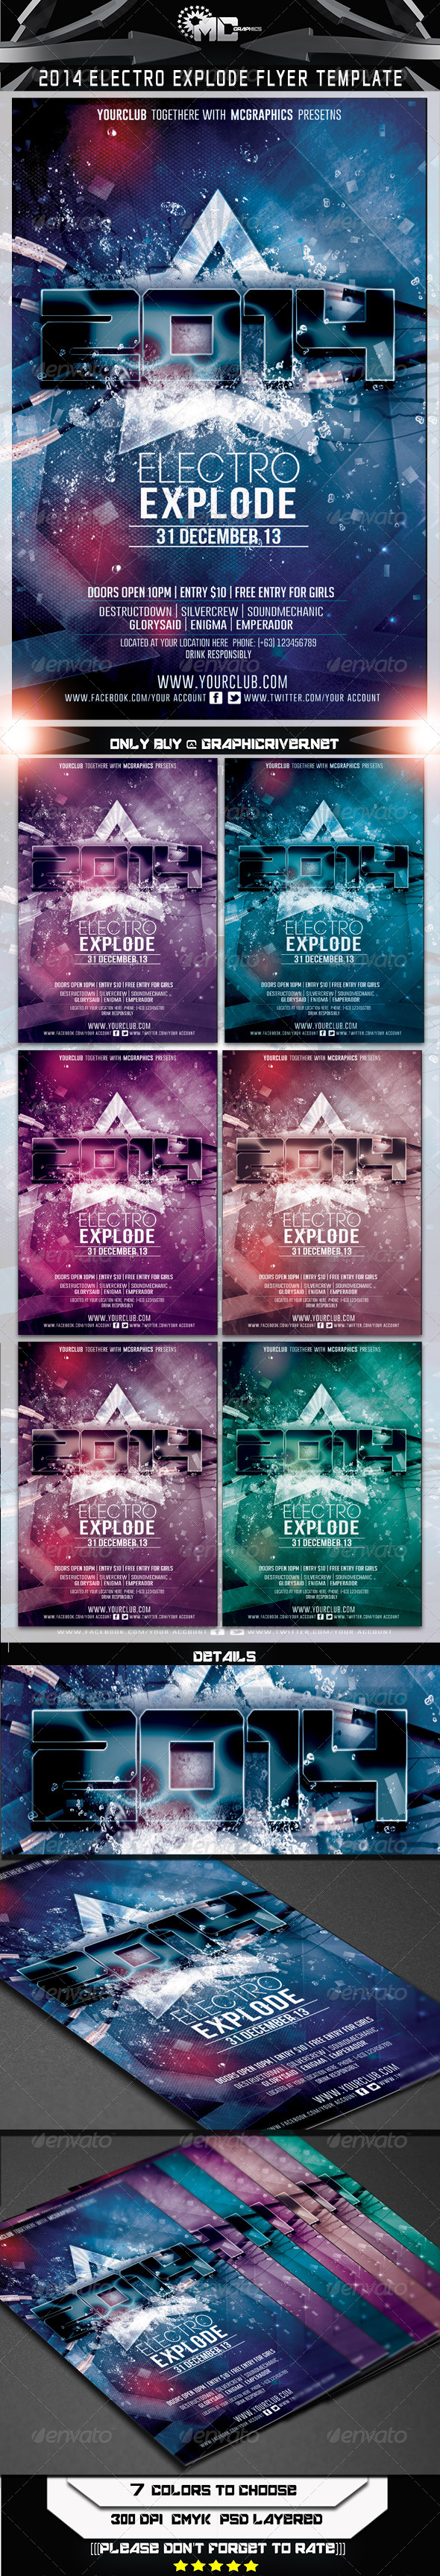 GraphicRiver 2014 Electro Explode Flyer Template 6364472